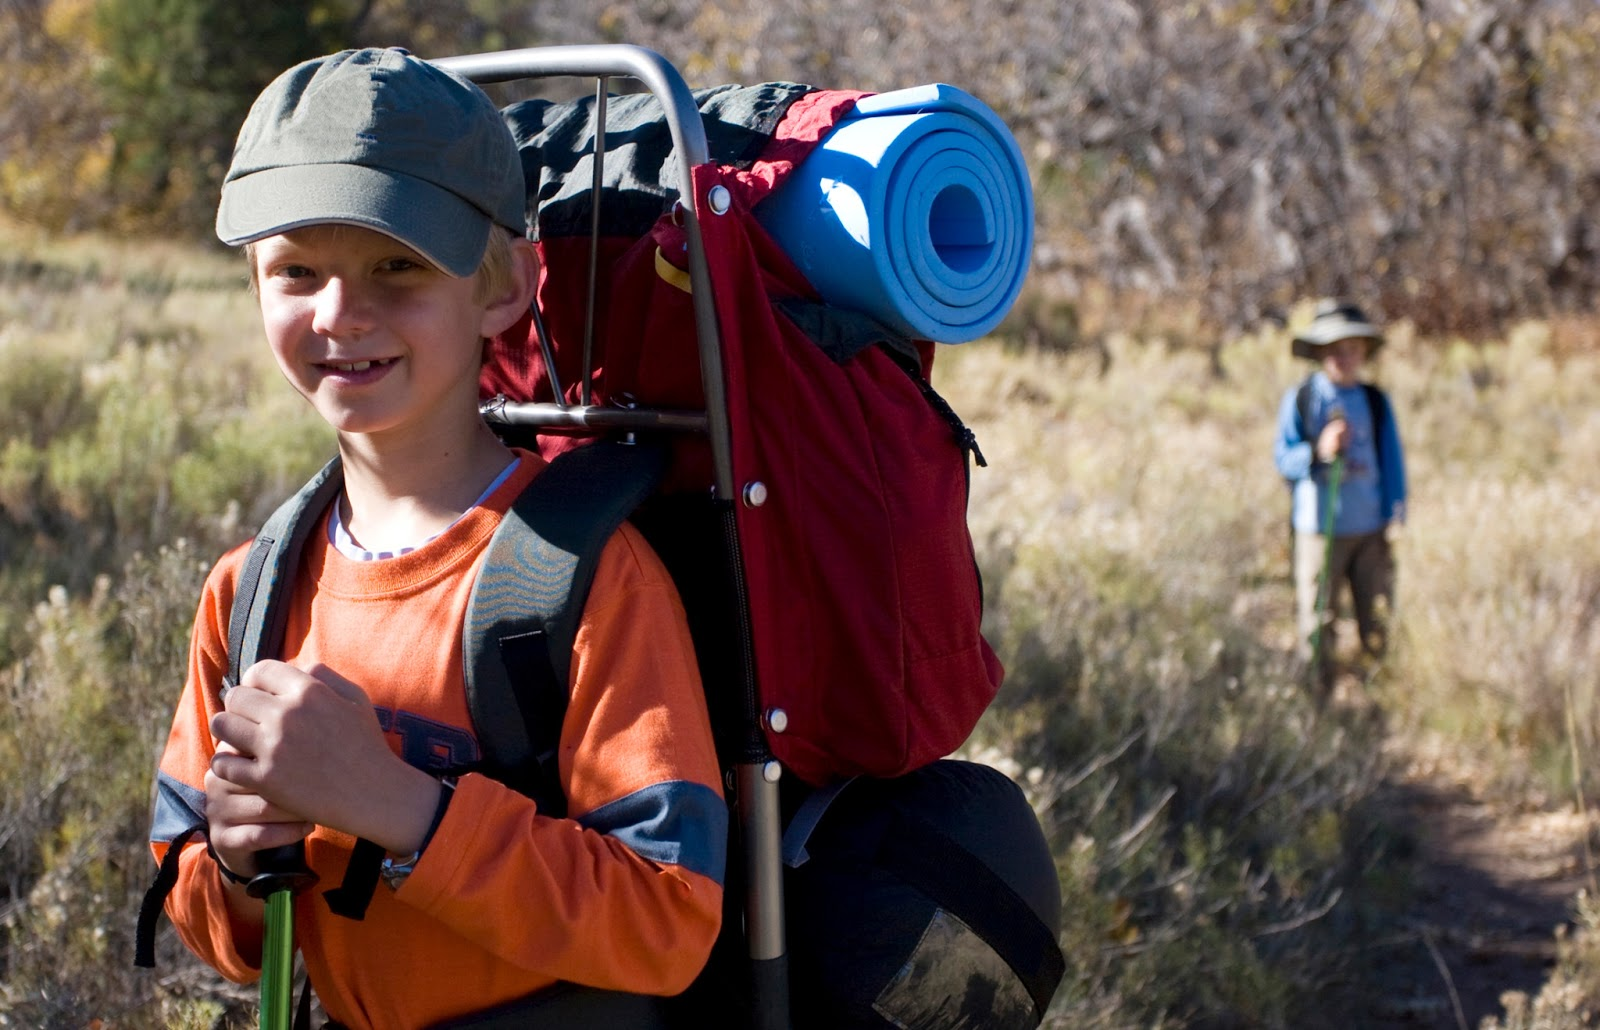 How Heavy Should My Child's Backpack Be? - AMC Outdoors